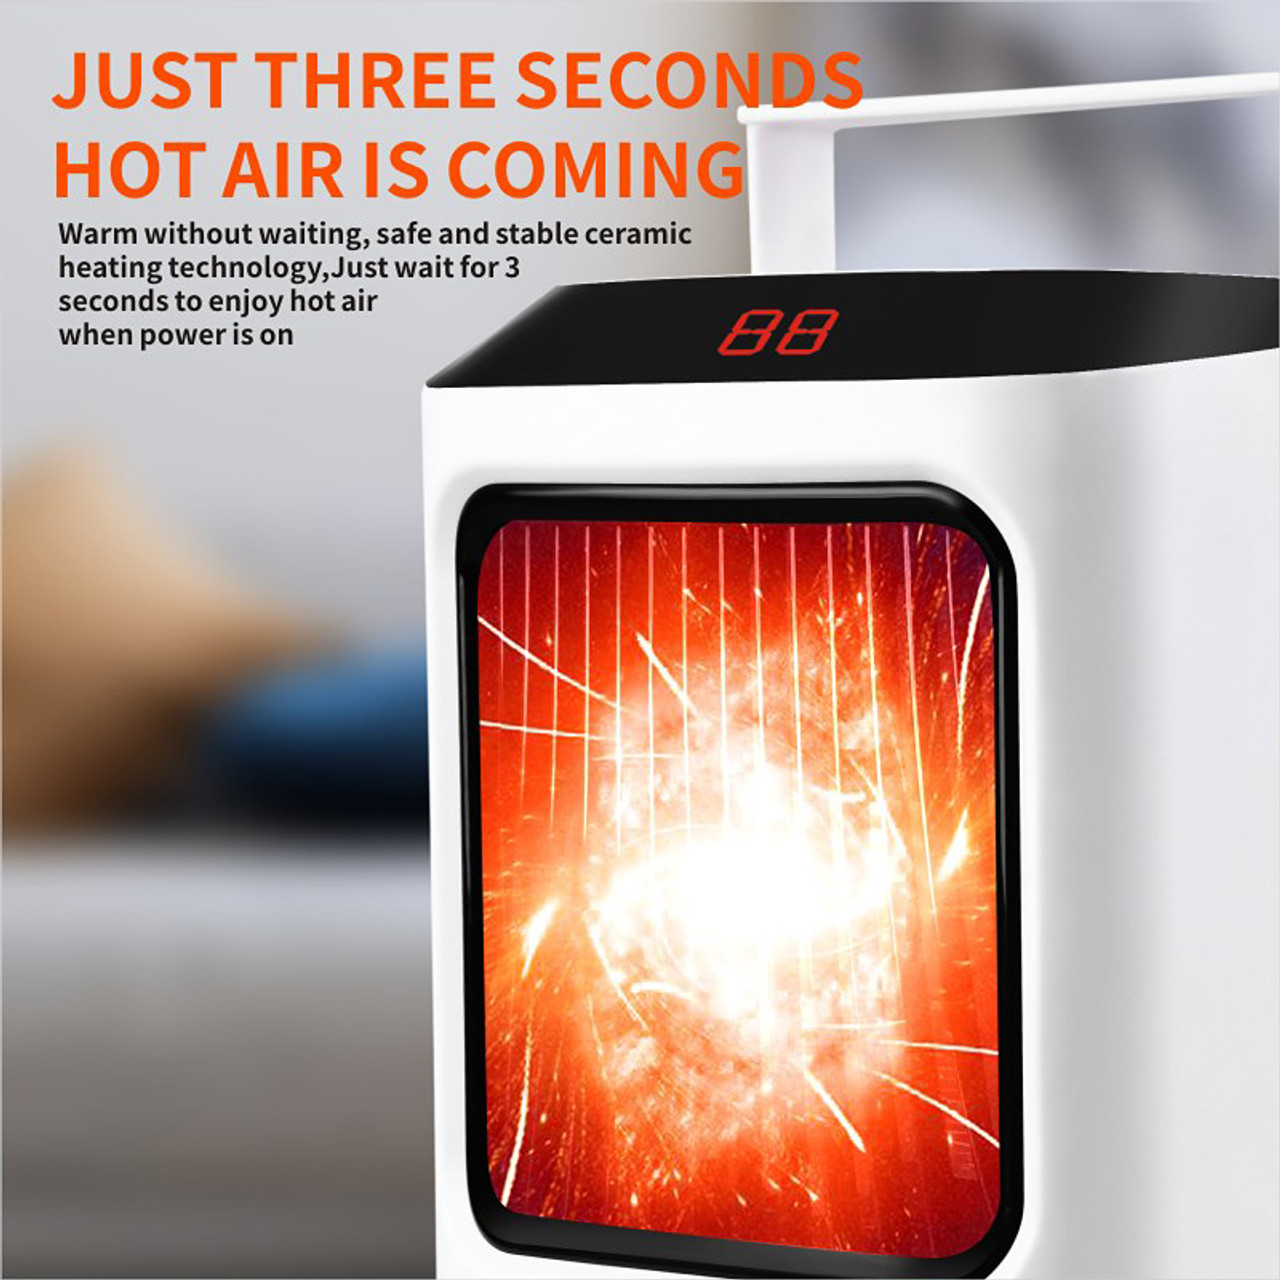 Portable Electric Space Heater Ceramic Heater Adjustable Thermostat and Timer Setting for Bedroom and Office